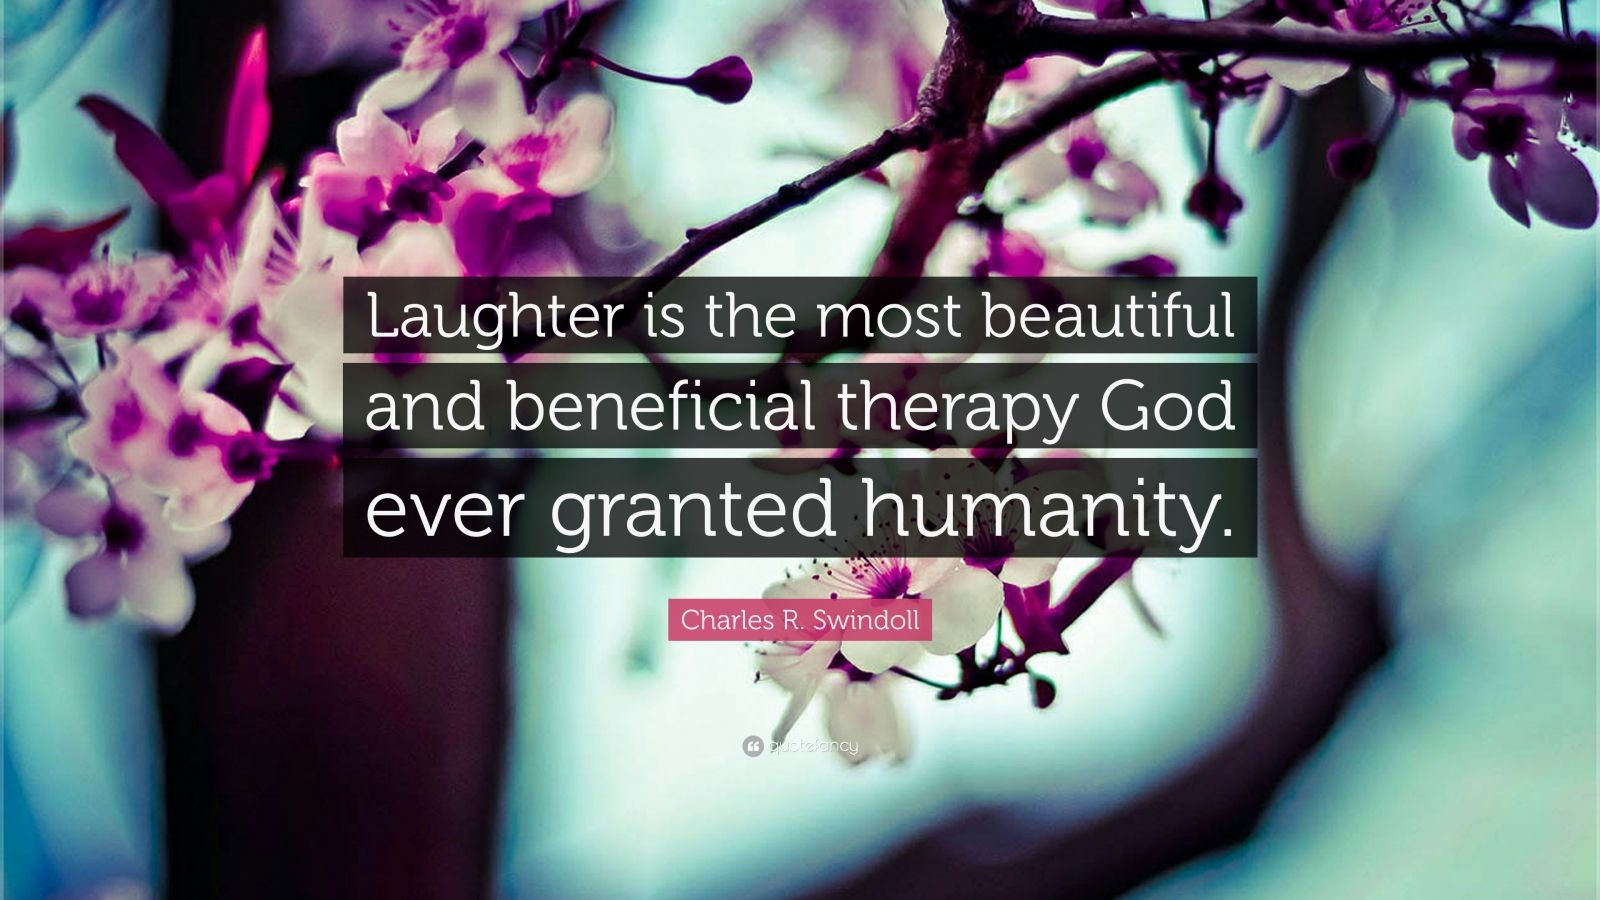 """Charles R. Swindoll Quote: """"Laughter is the most beautiful and beneficial therapy God ever granted humanity."""""""